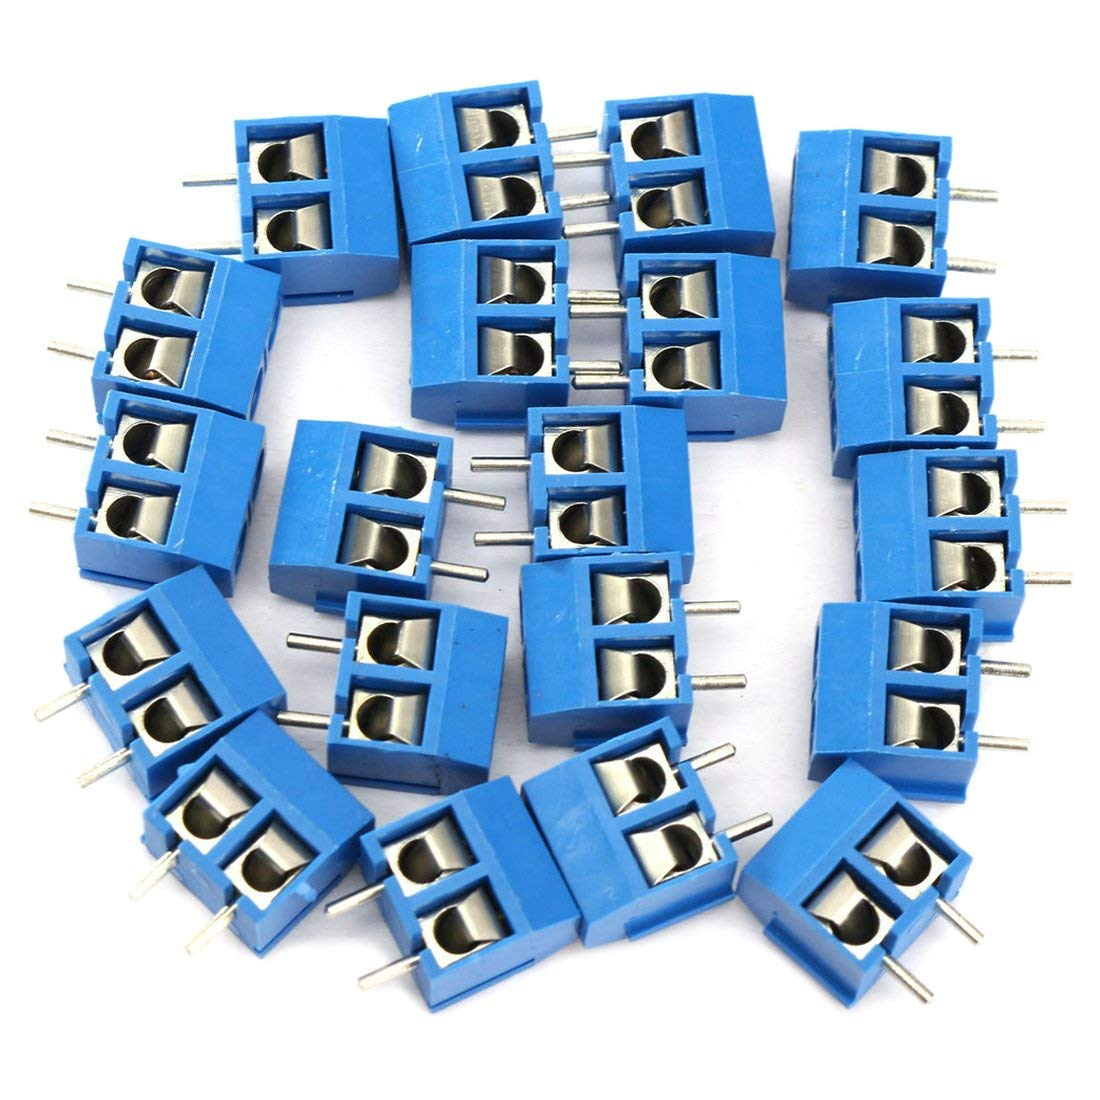 SODIAL(R) 2-Pin Screw Terminal Block Connector 5.08mm Pitch Panel PCB Mount, 200Pcs